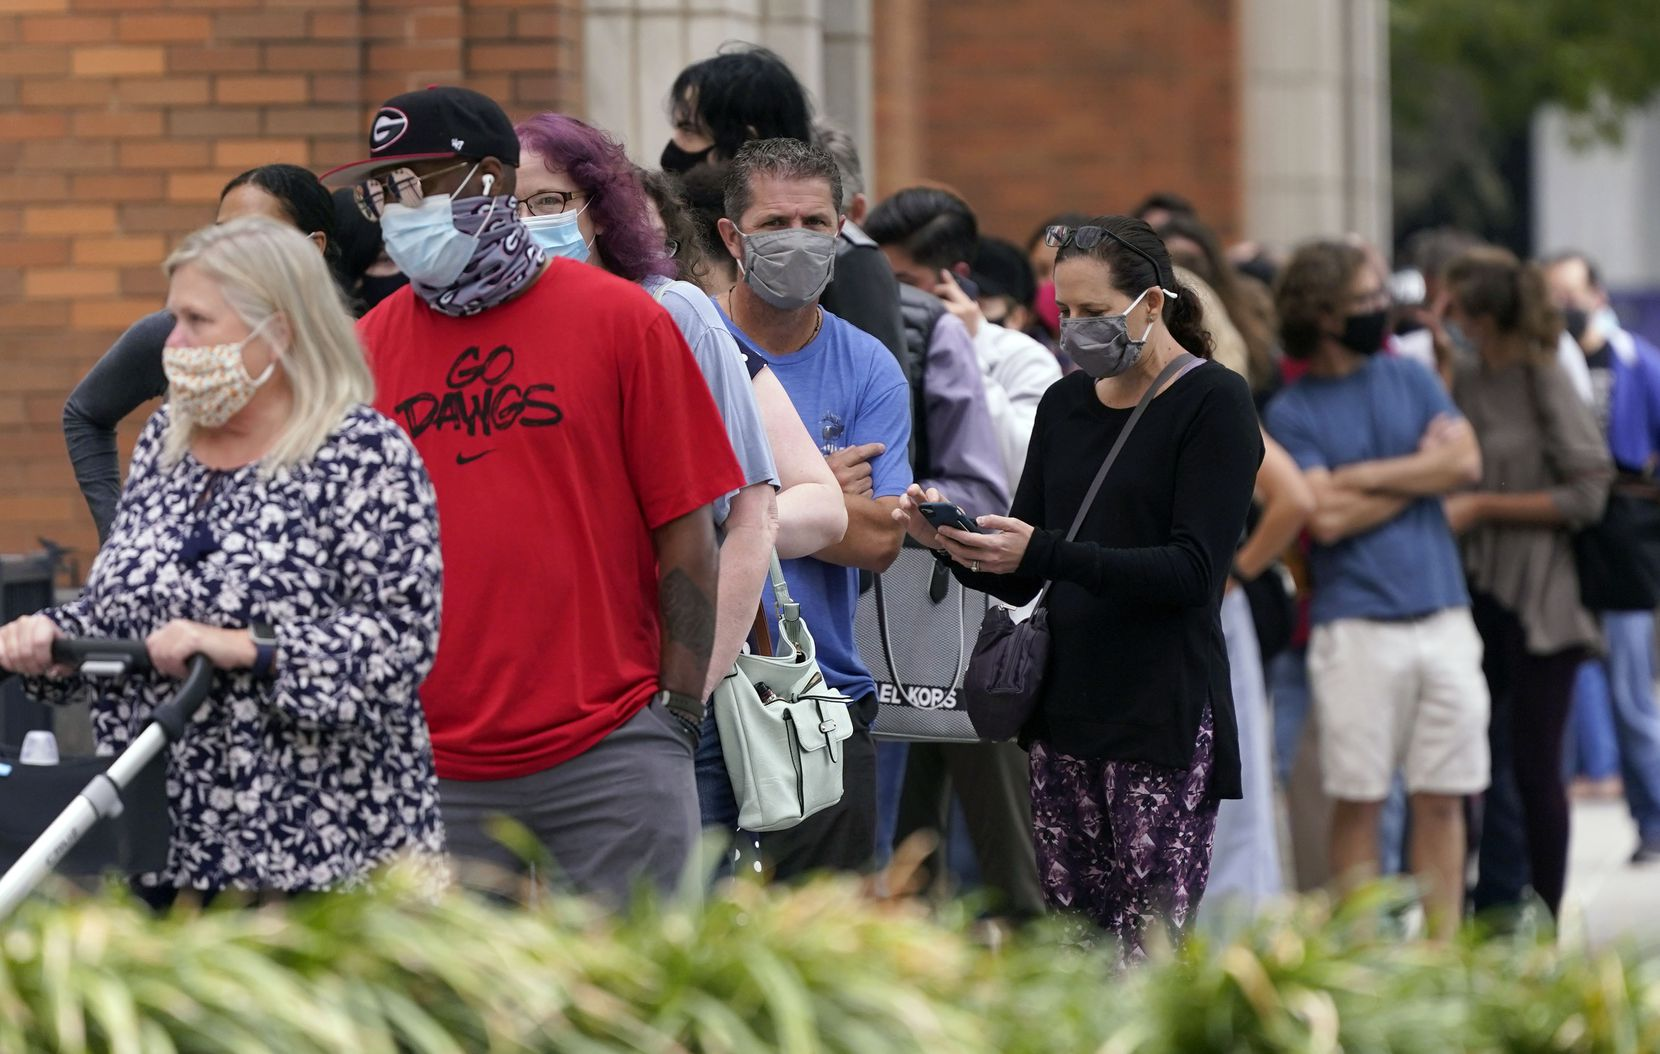 Voters wait to cast ballots at the American Airlines Center during early voting Thursday, Oct. 15, 2020, in Dallas. (AP Photo/LM Otero)